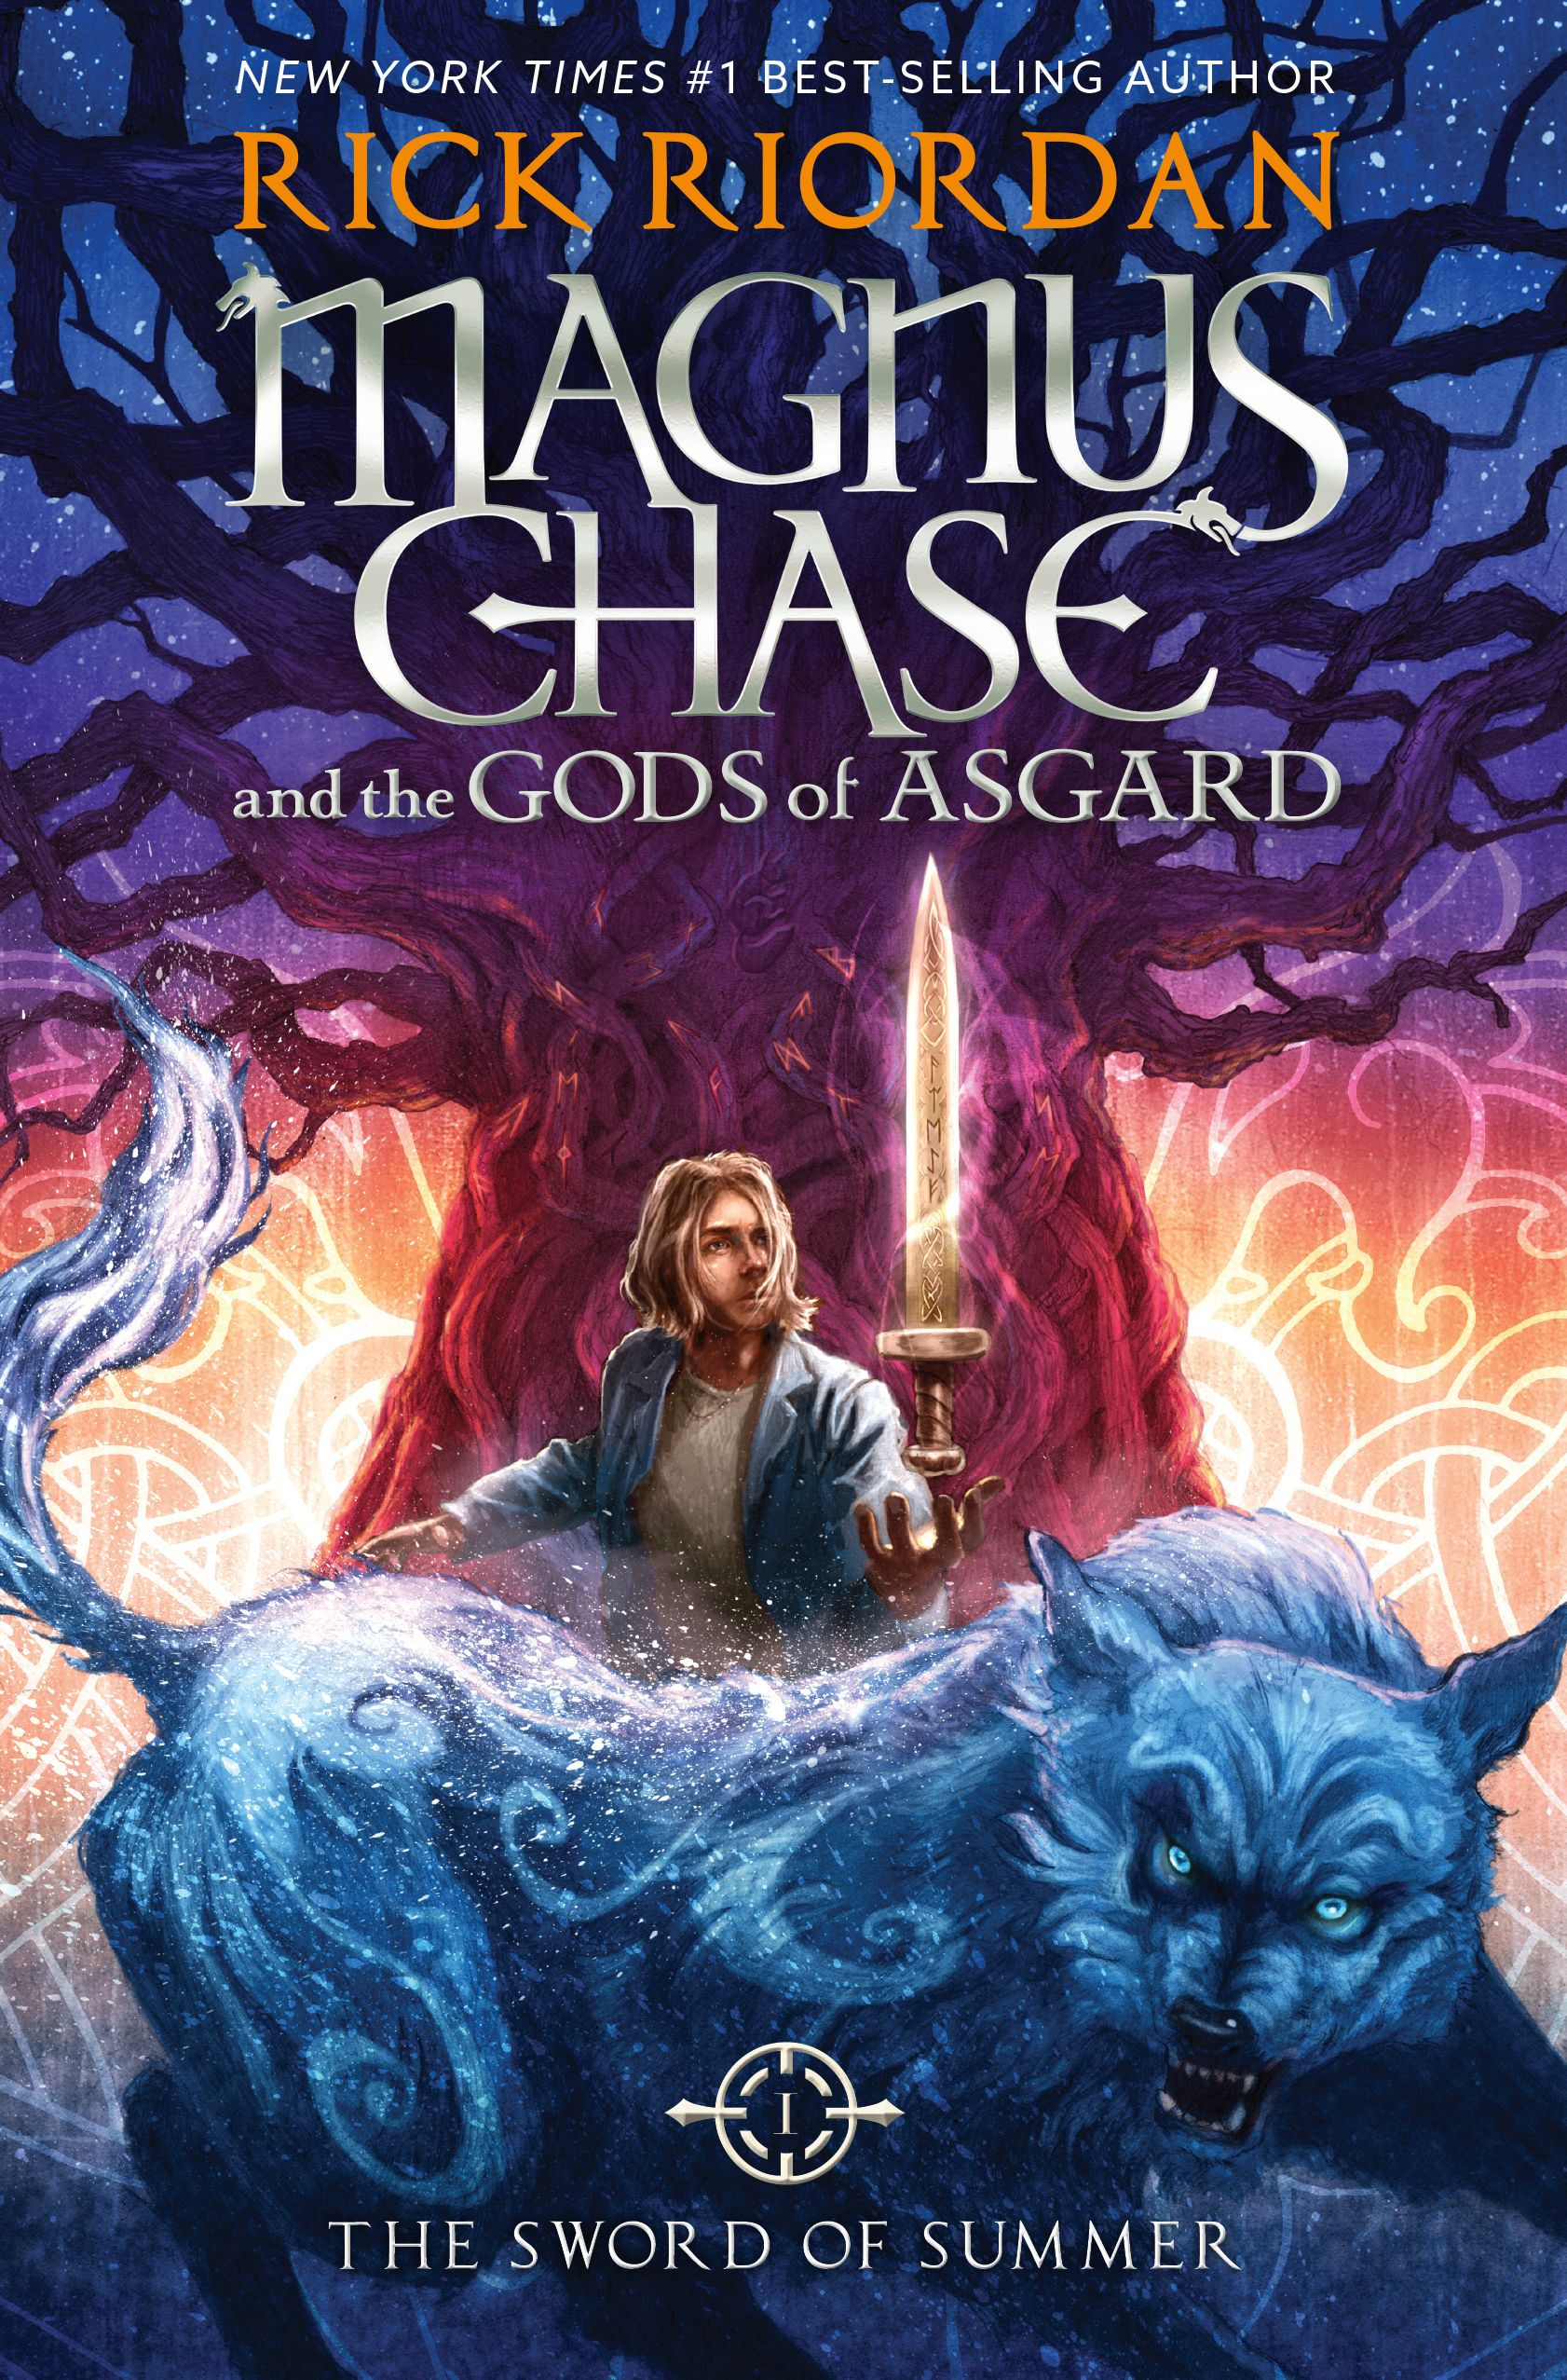 Viking Mythology Comes Alive In Trailer For Rick Riordan S Magnus